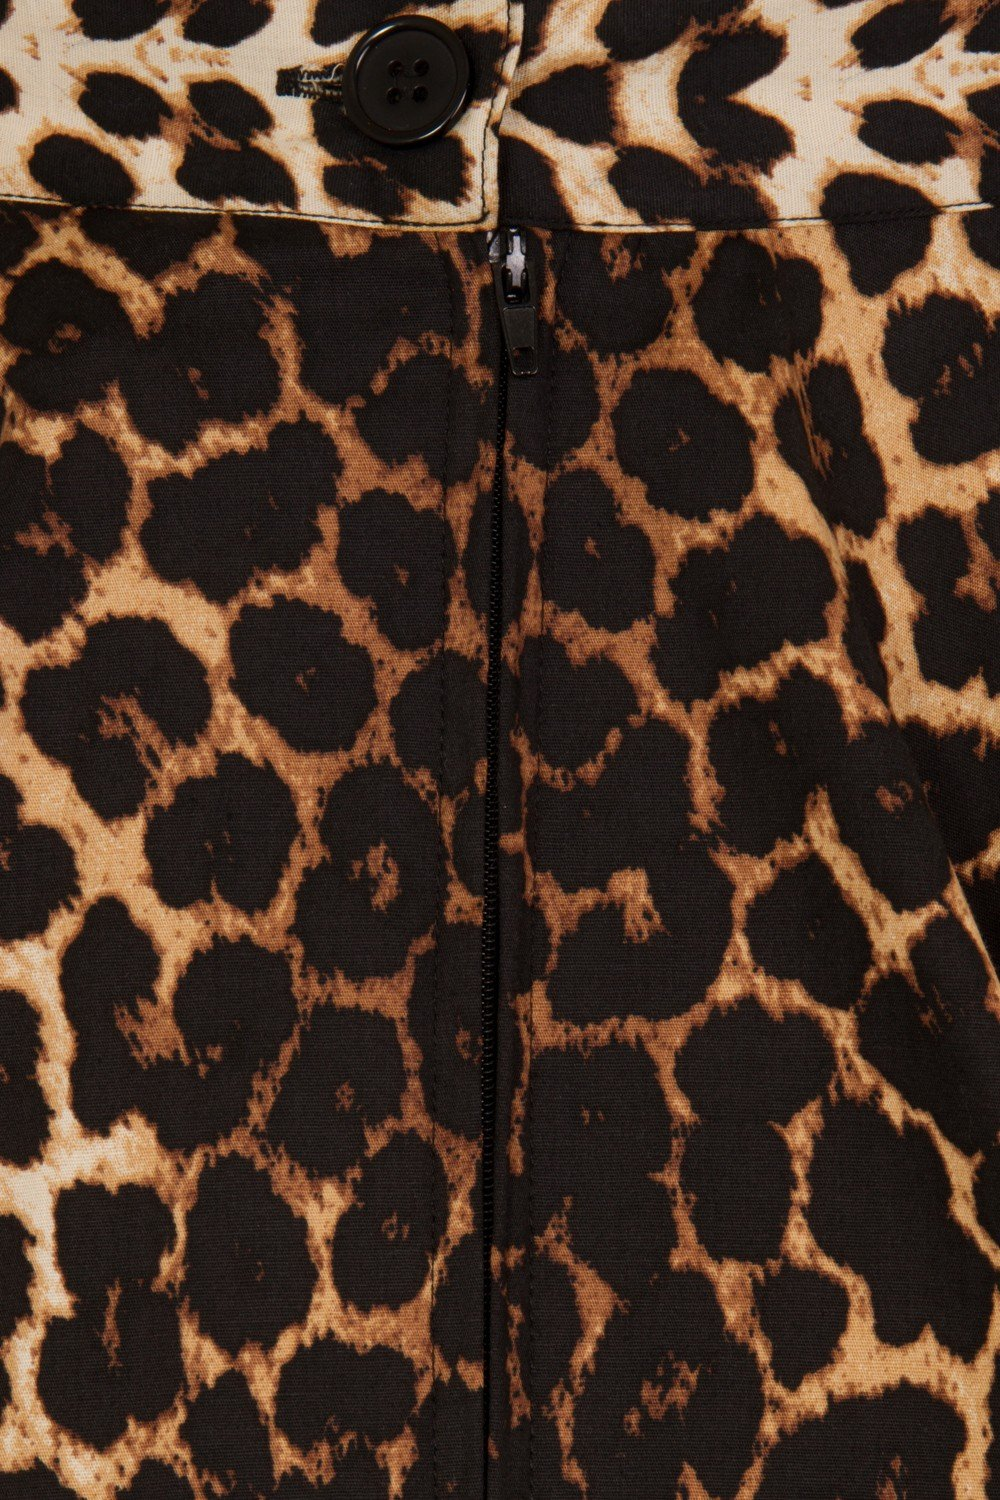 Jupe circulaire leopard - detail